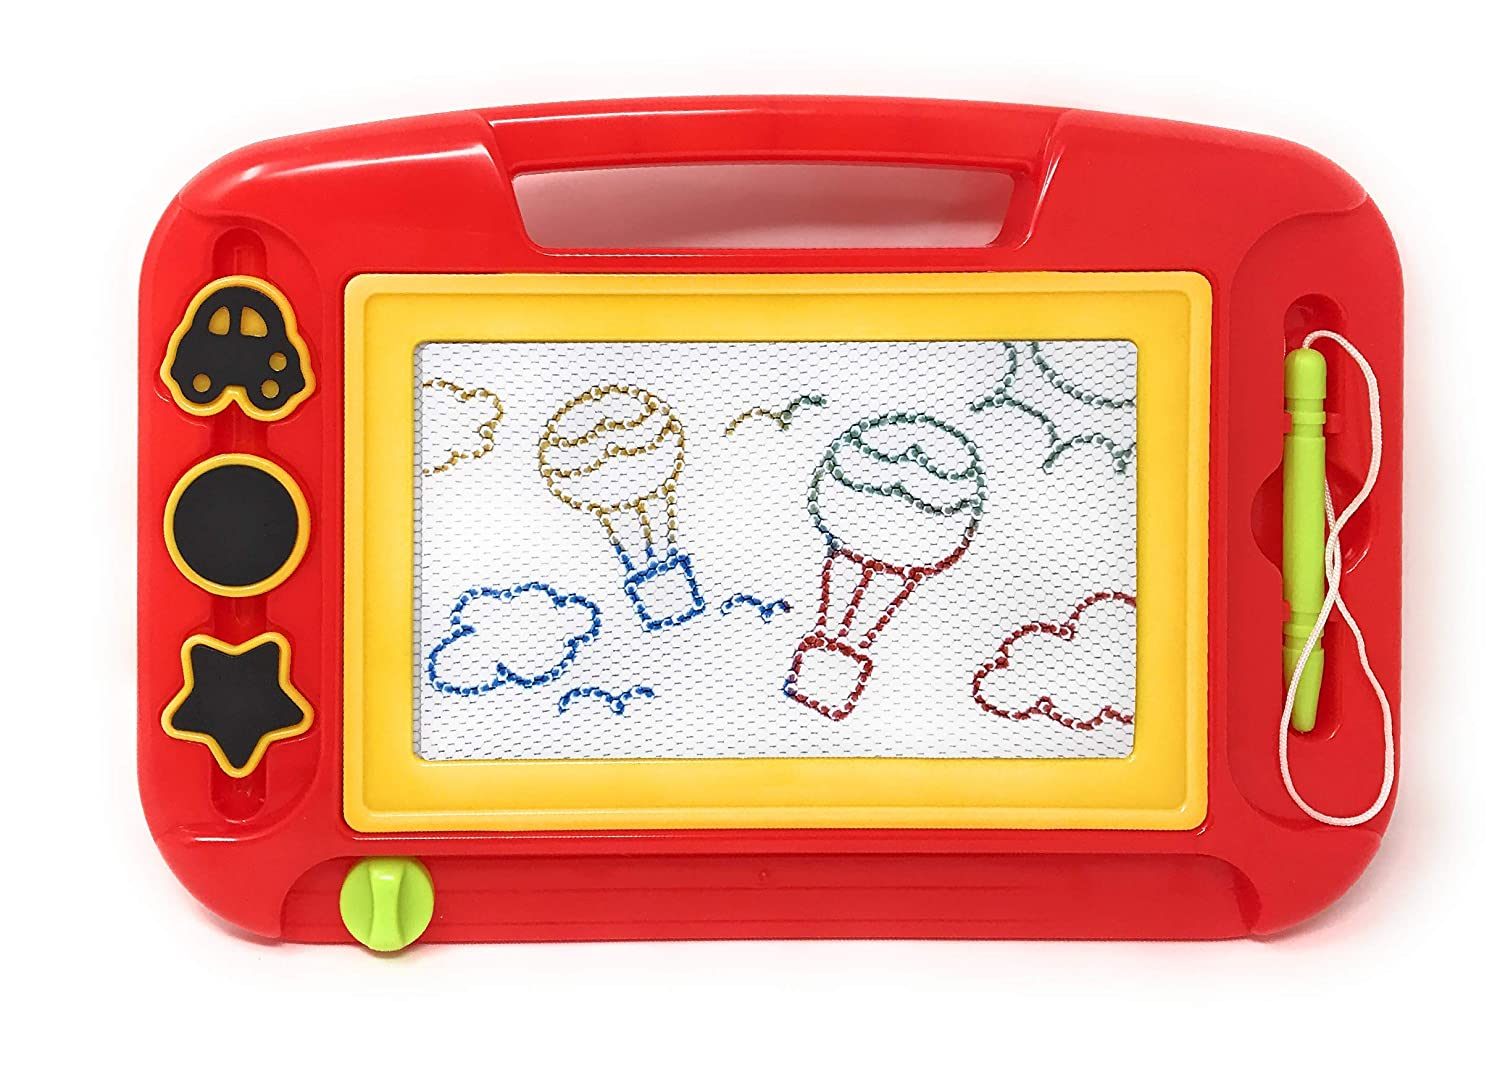 The Magnetic Doodle Board travel product recommended by Kristina Portillo on Lifney.